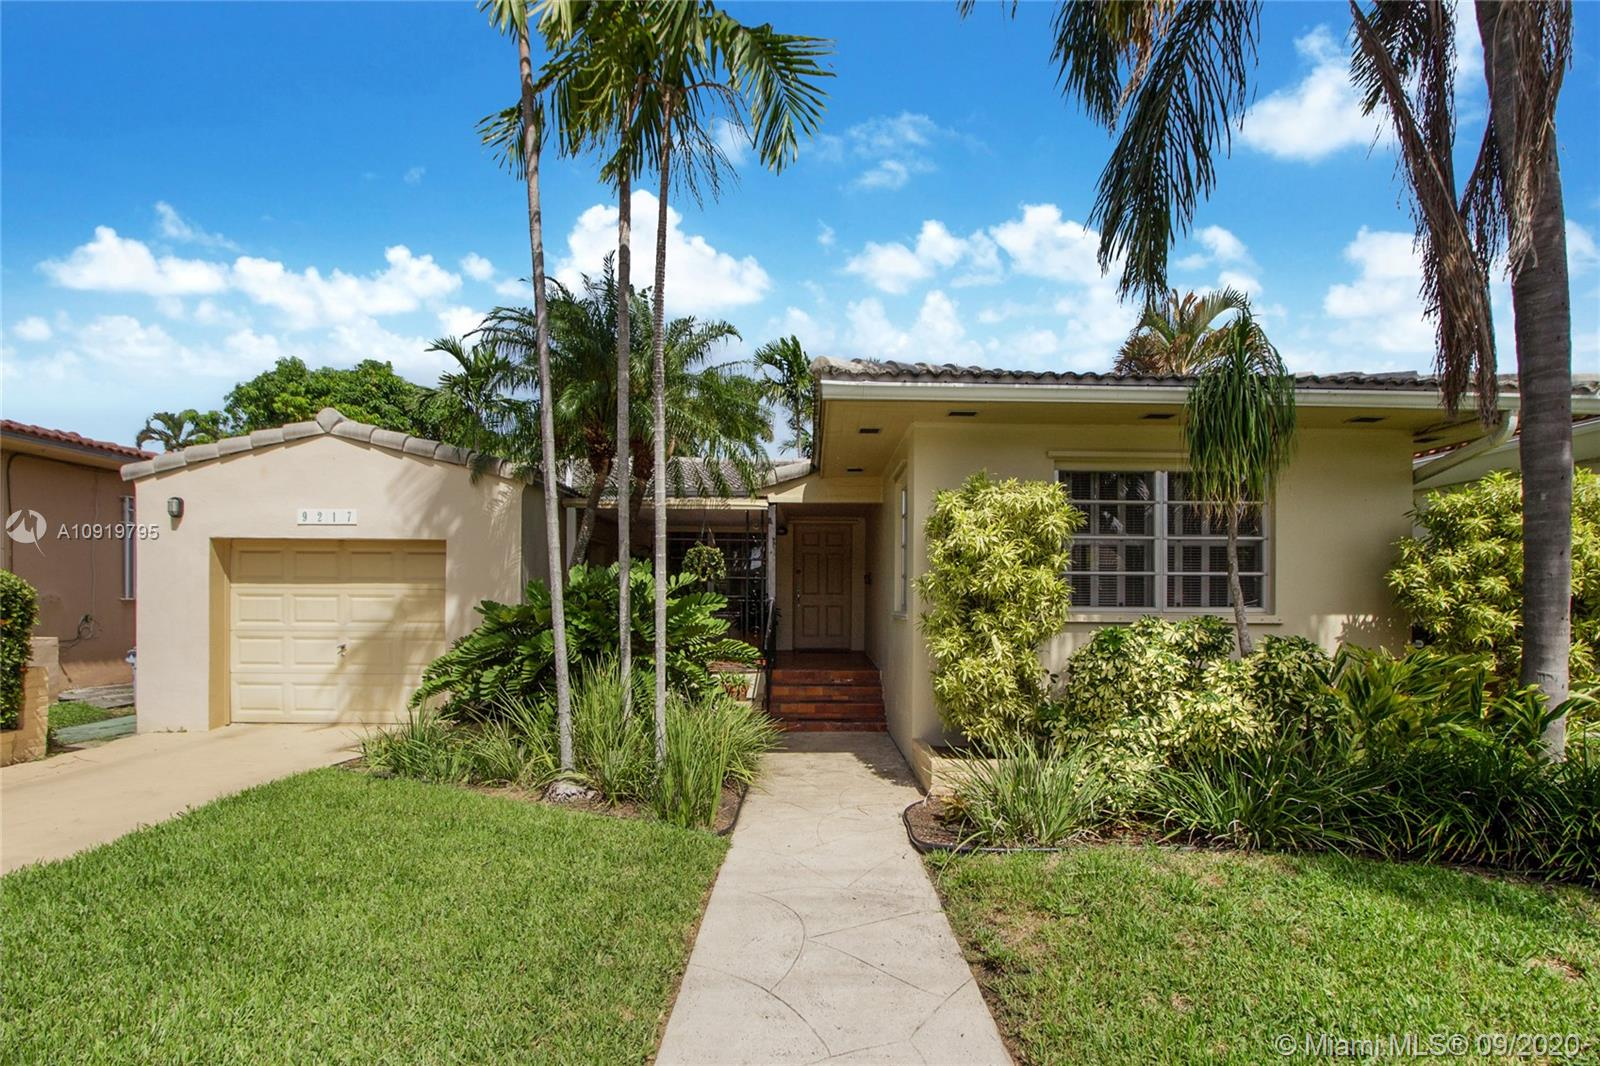 Altos Del Mar - 9217 Byron Ave, Surfside, FL 33154